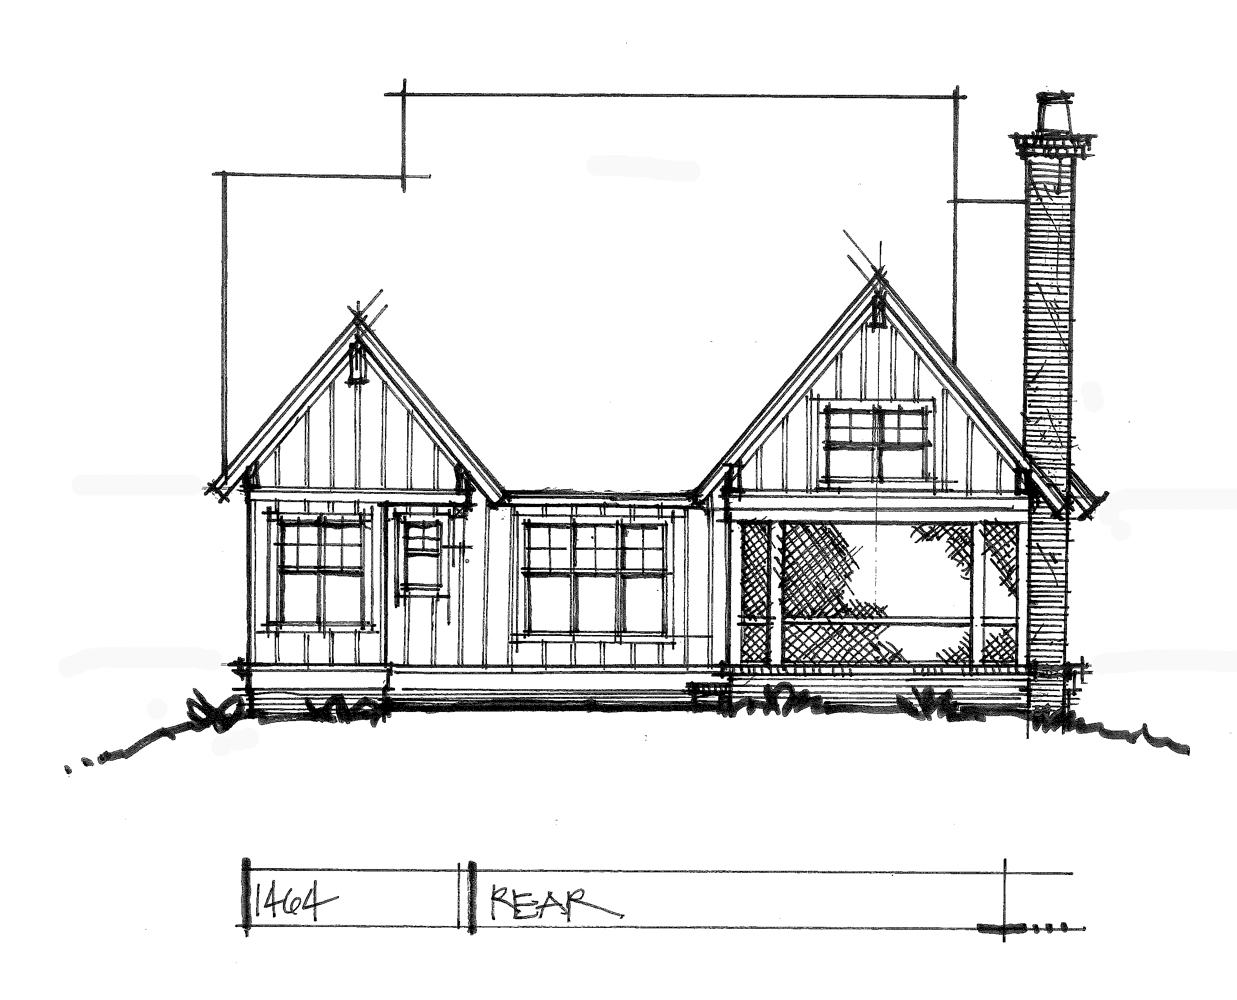 Check out the rear rendering of house plan 1464.